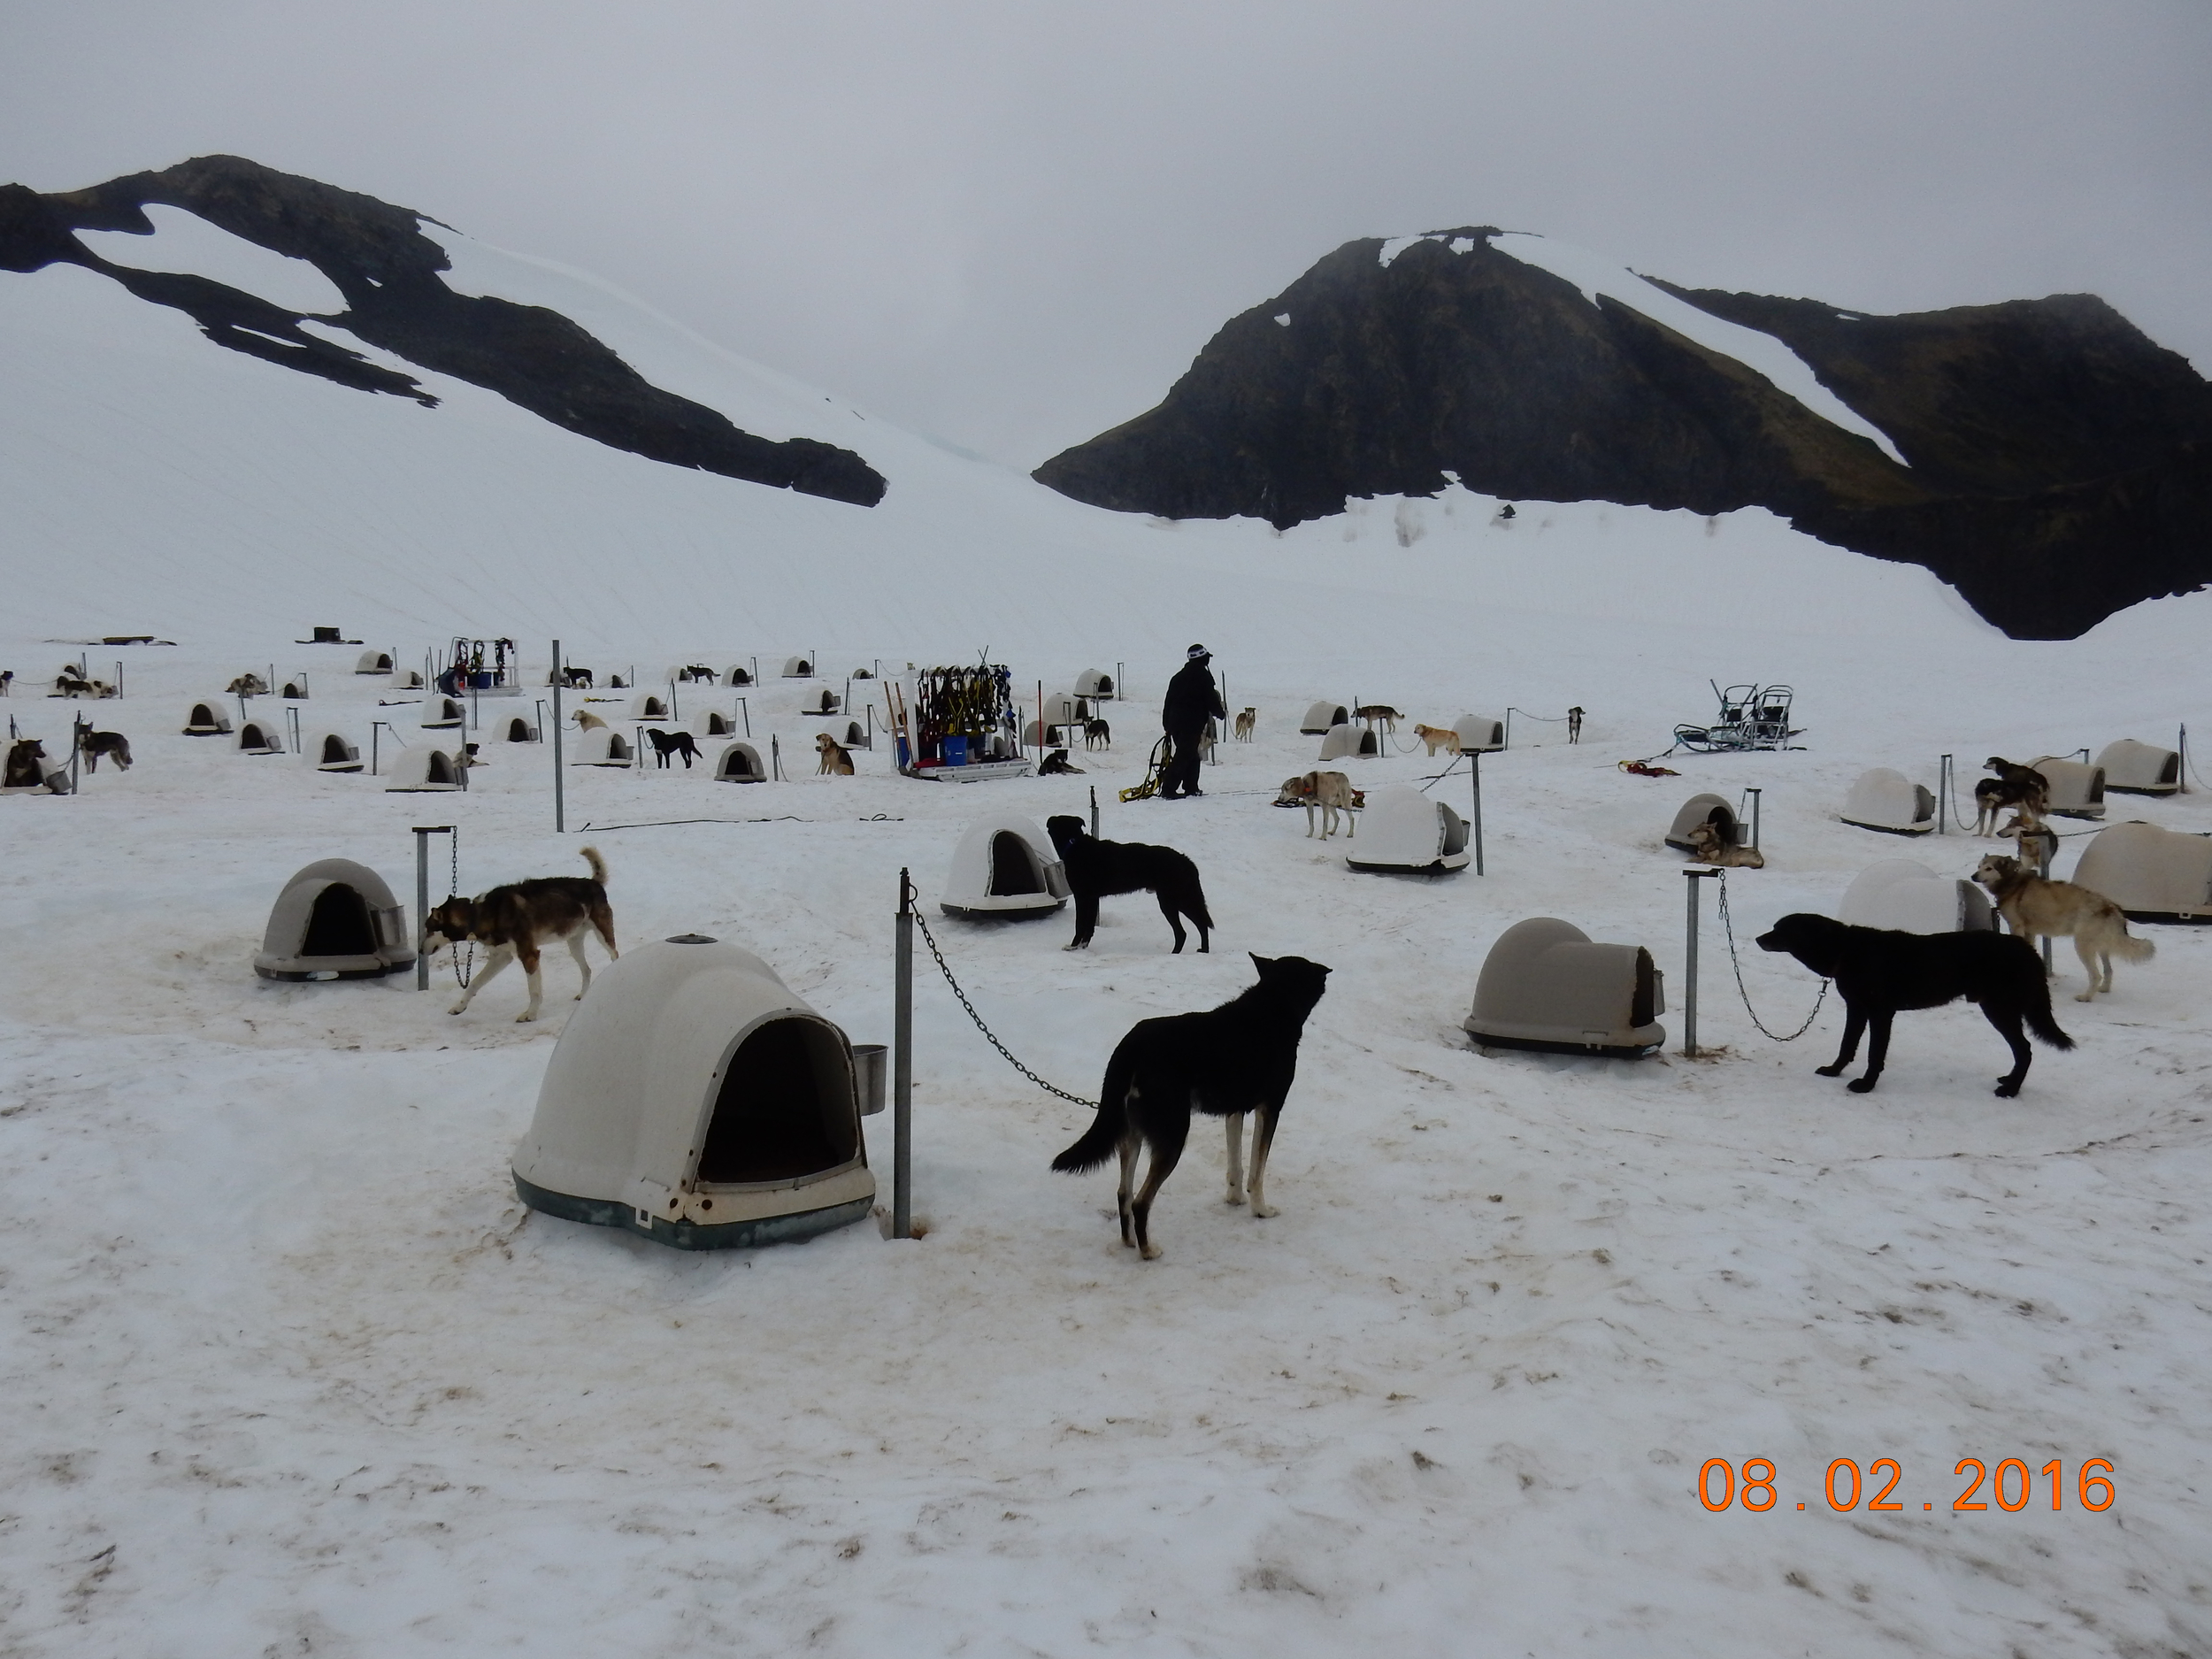 Summer camp for dogs. Trip would not fit in.